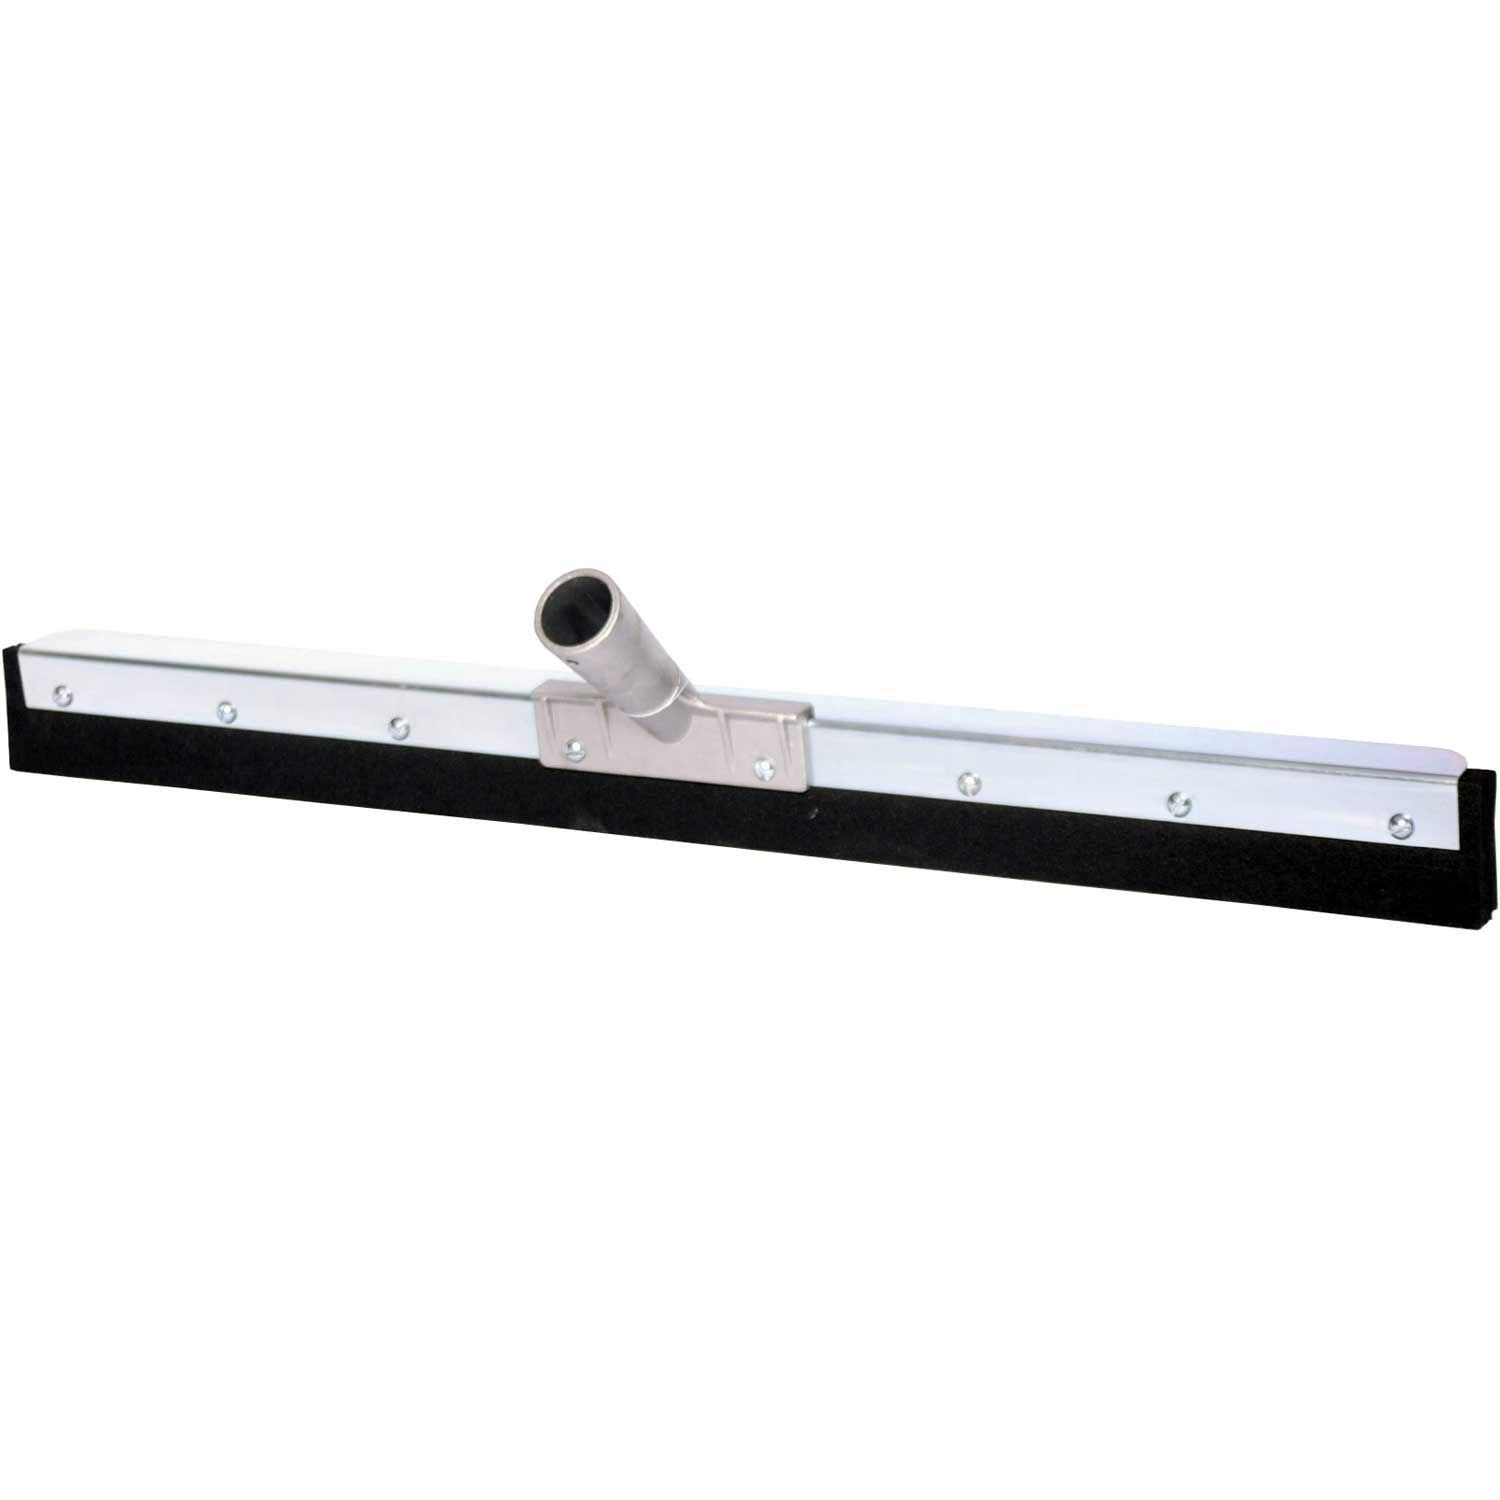 Haviland 0730 Double Foam Rubber Standard Duty Floor Squeegee, 30'' Length, Black